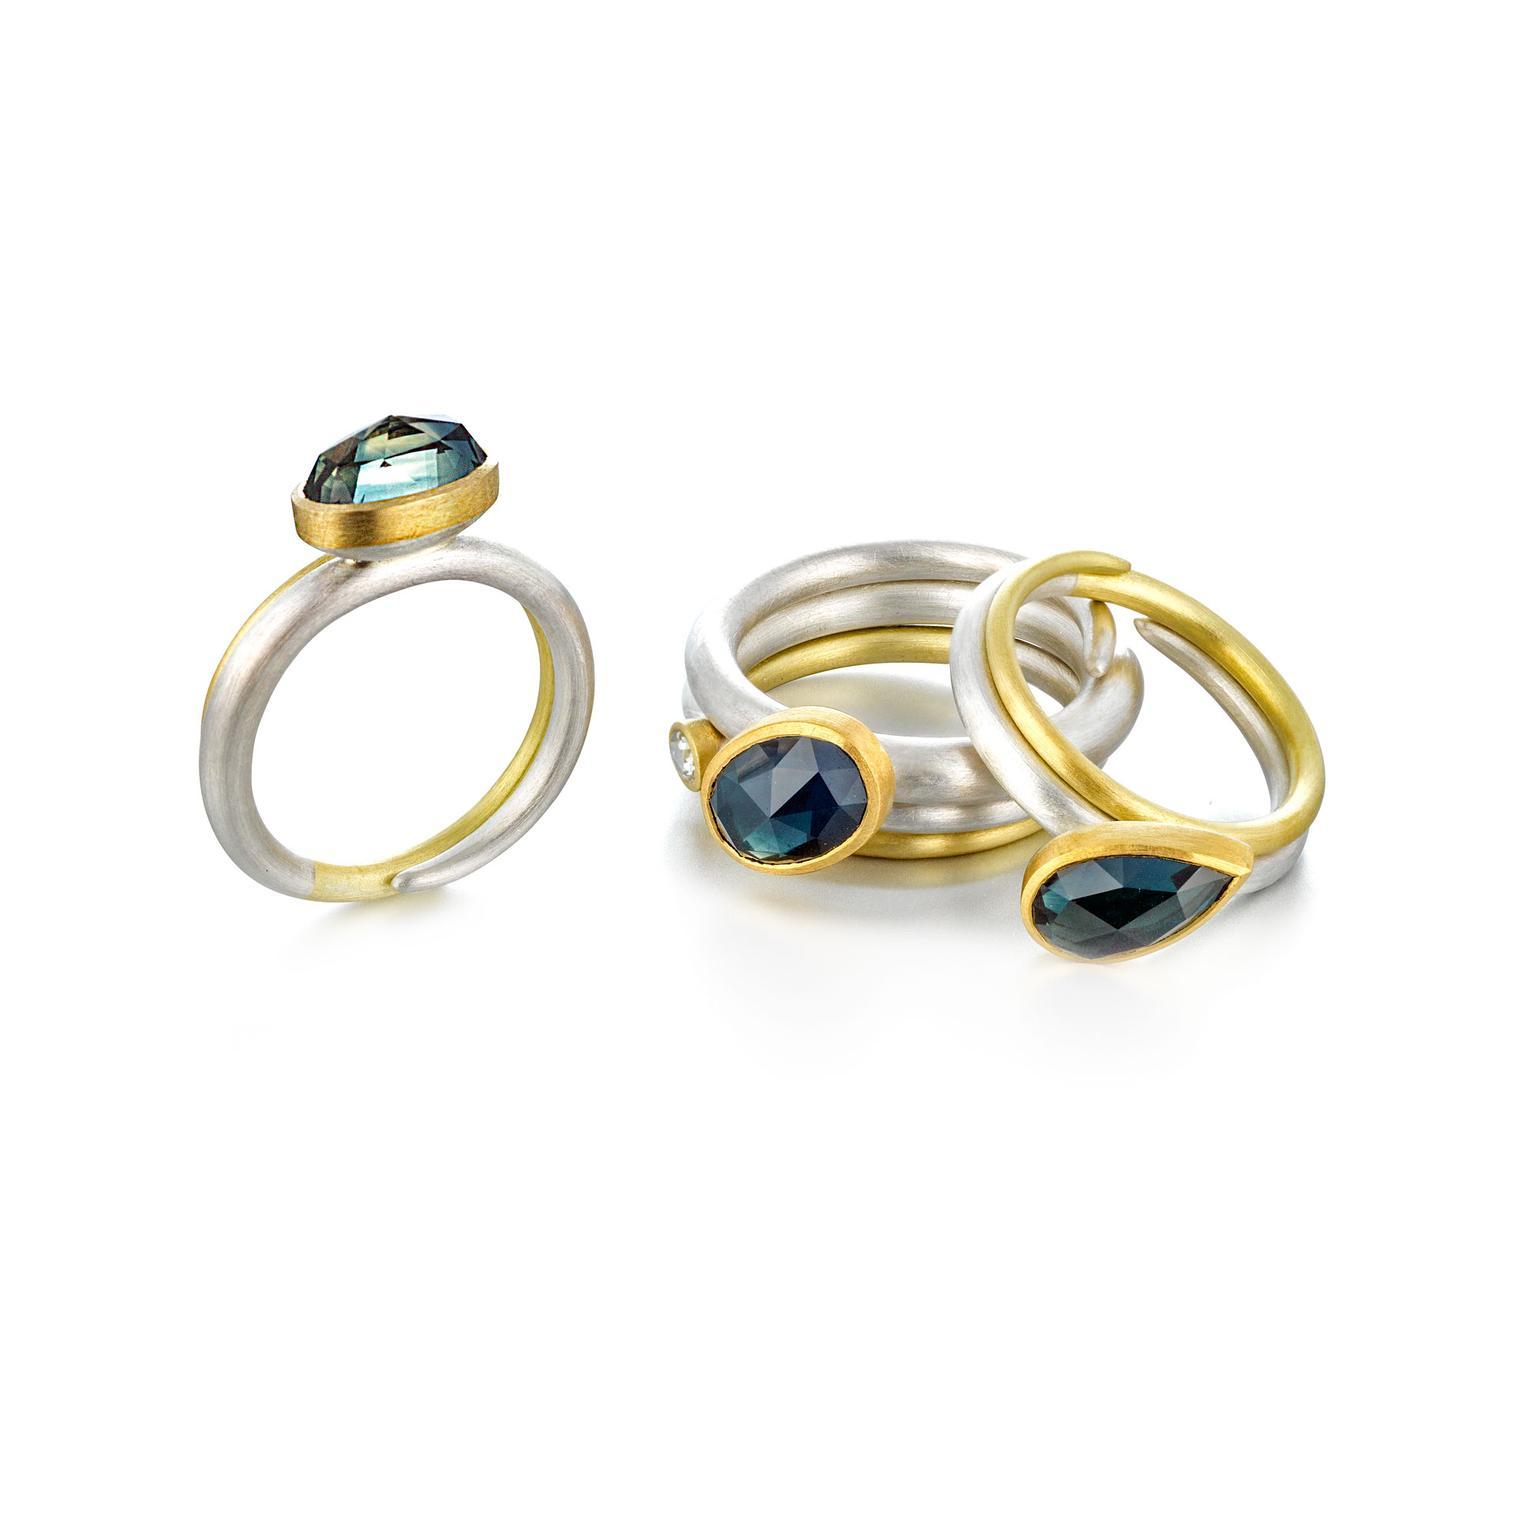 Mark Nuell silver and gold Spiral rings